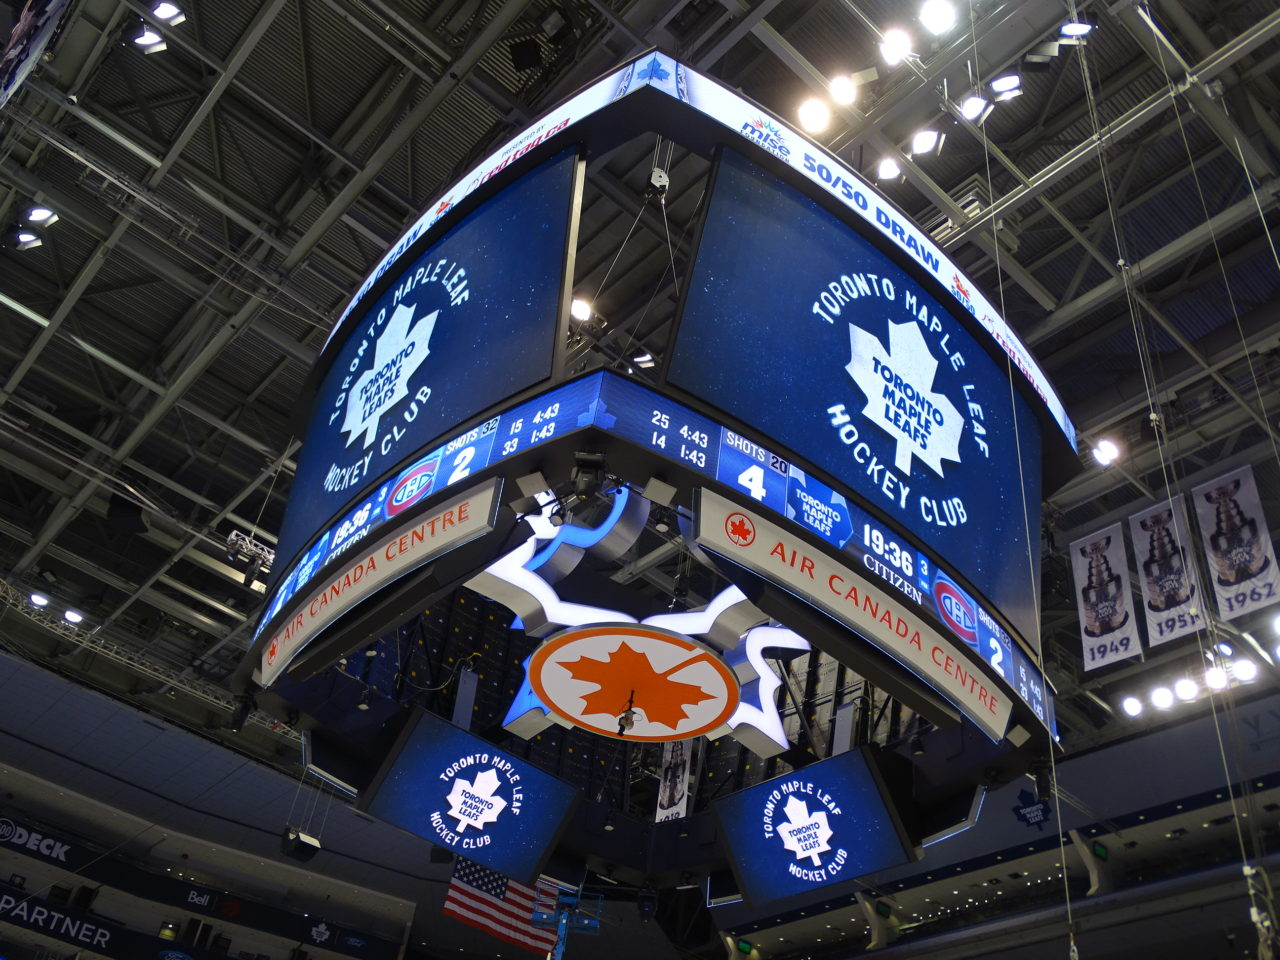 Toronto Maple Leafs, Air Canada Center, LED Scoreboard Display, Center Hung